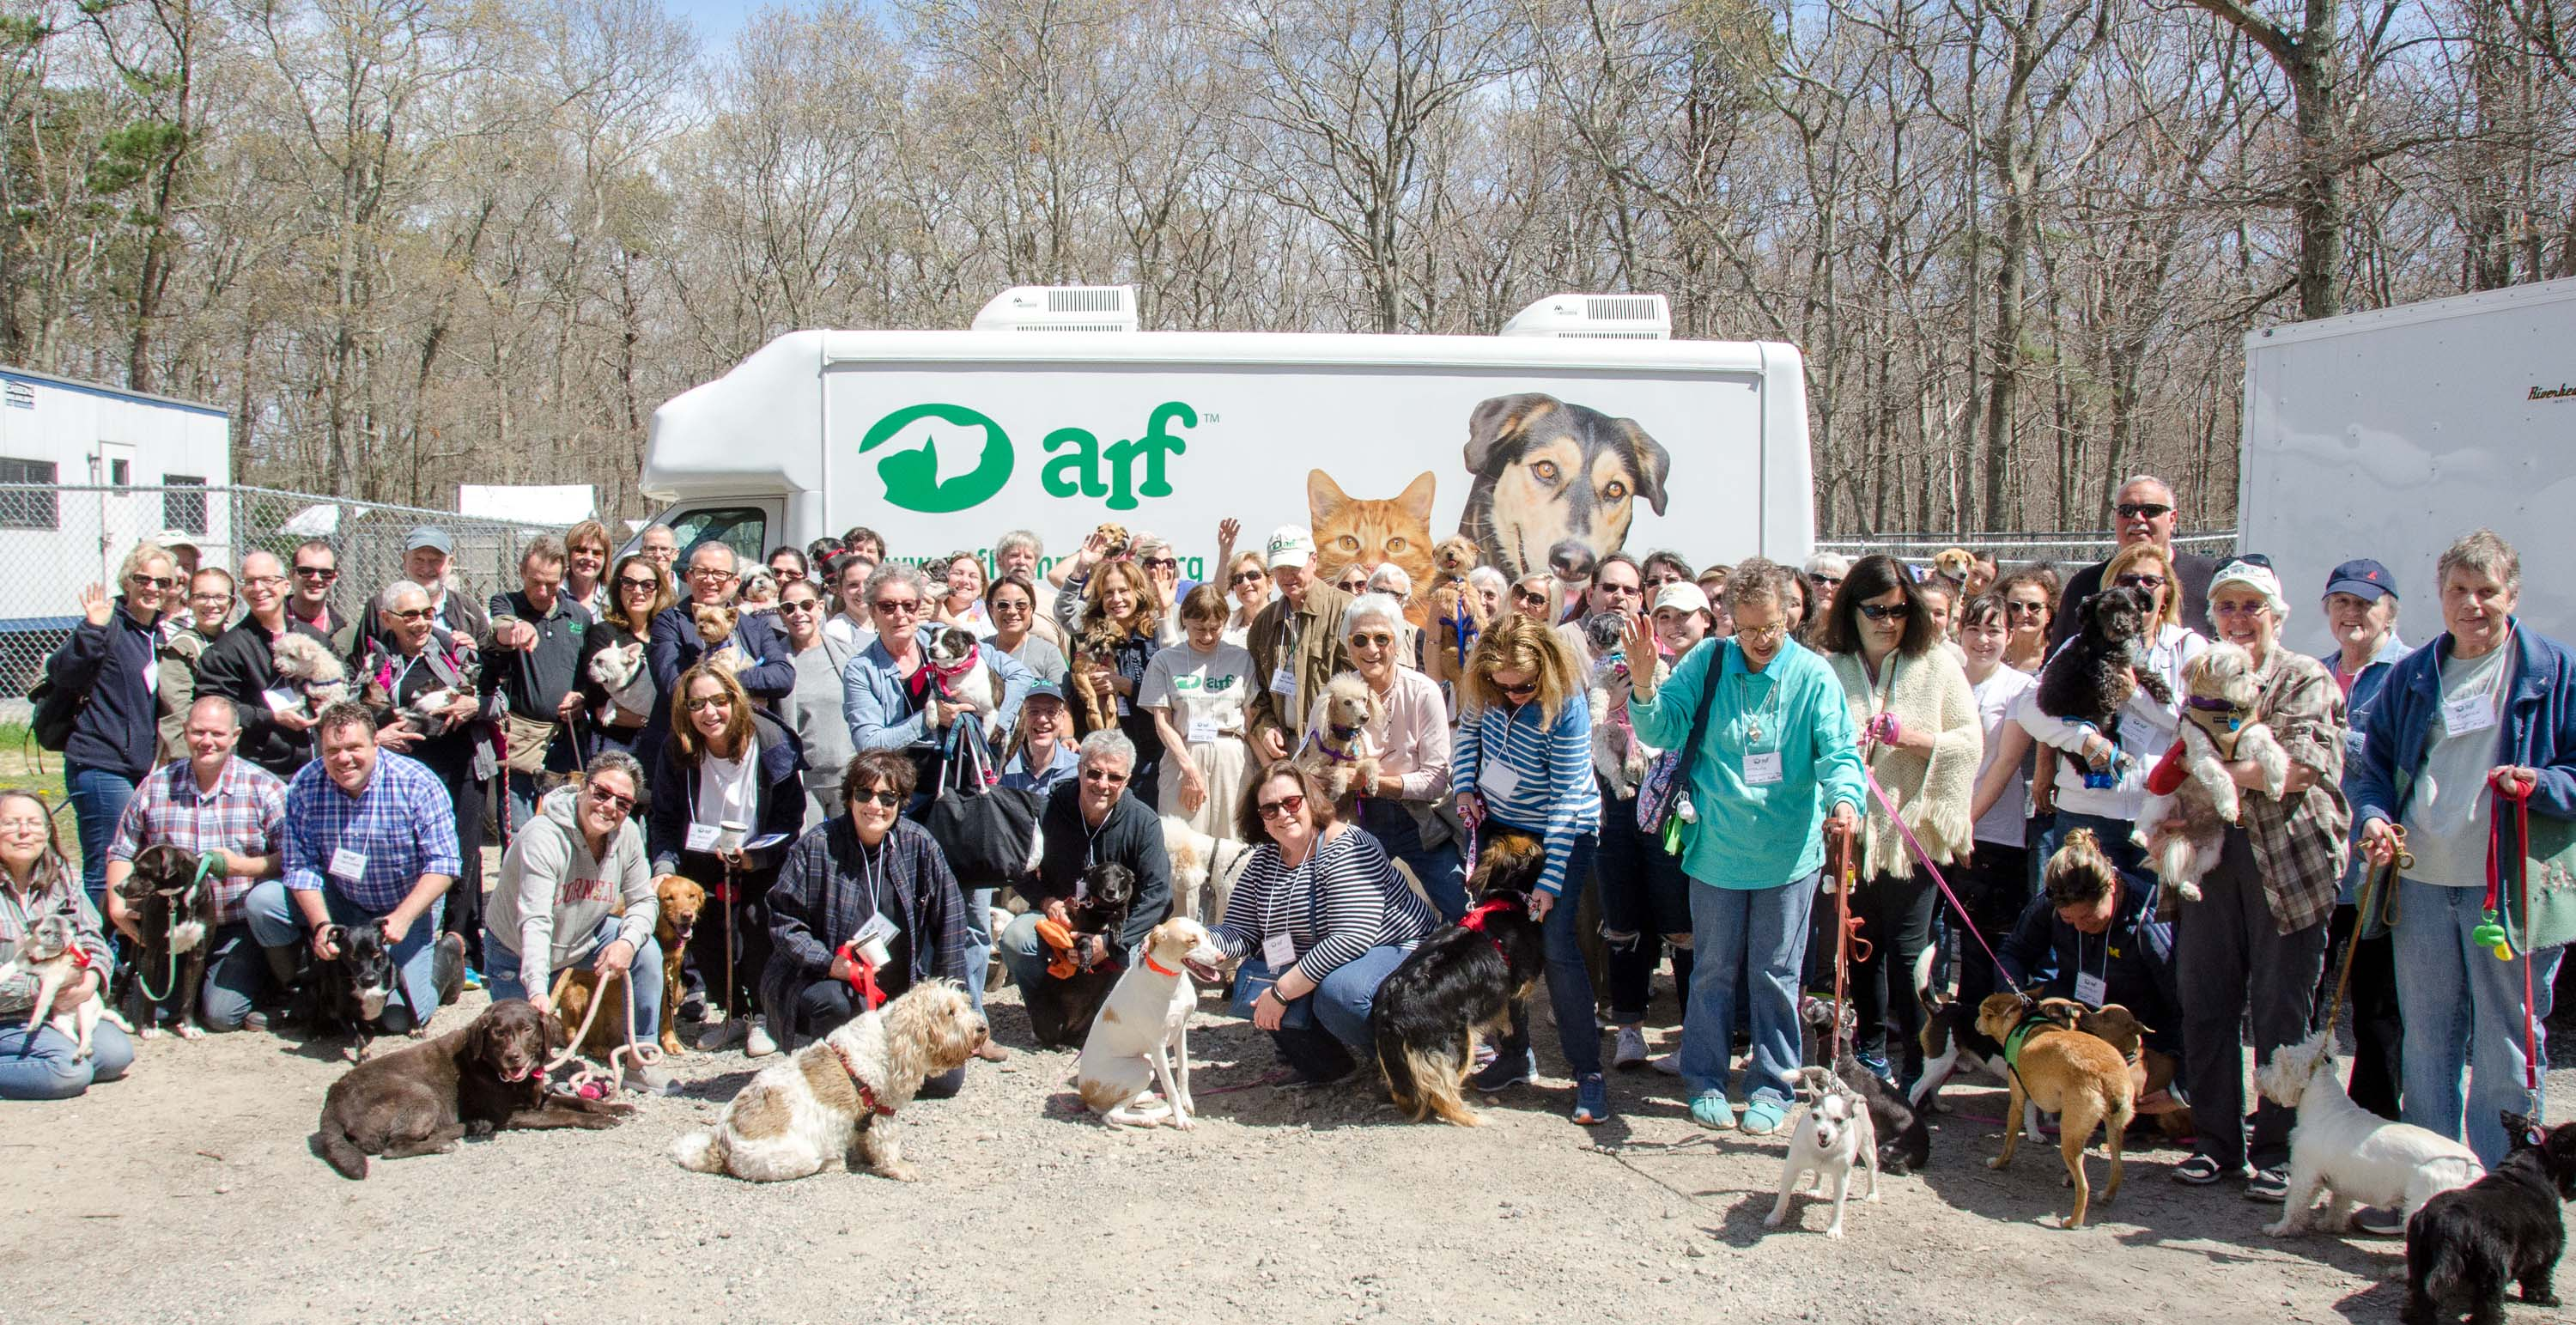 ARF alumni and friends, the group shot